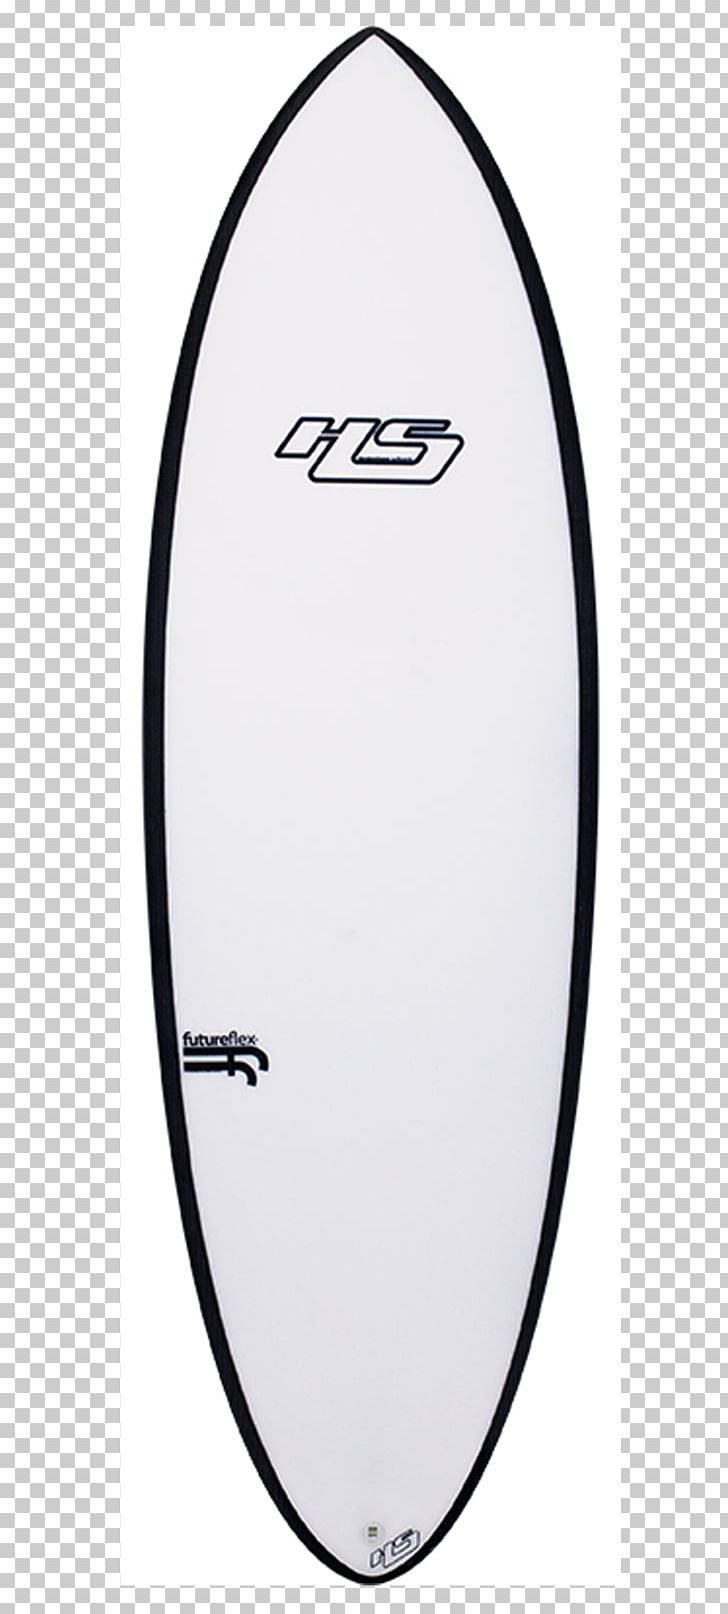 Hayden Shapes Surfboards PNG, Clipart, Cox Communications, Cox